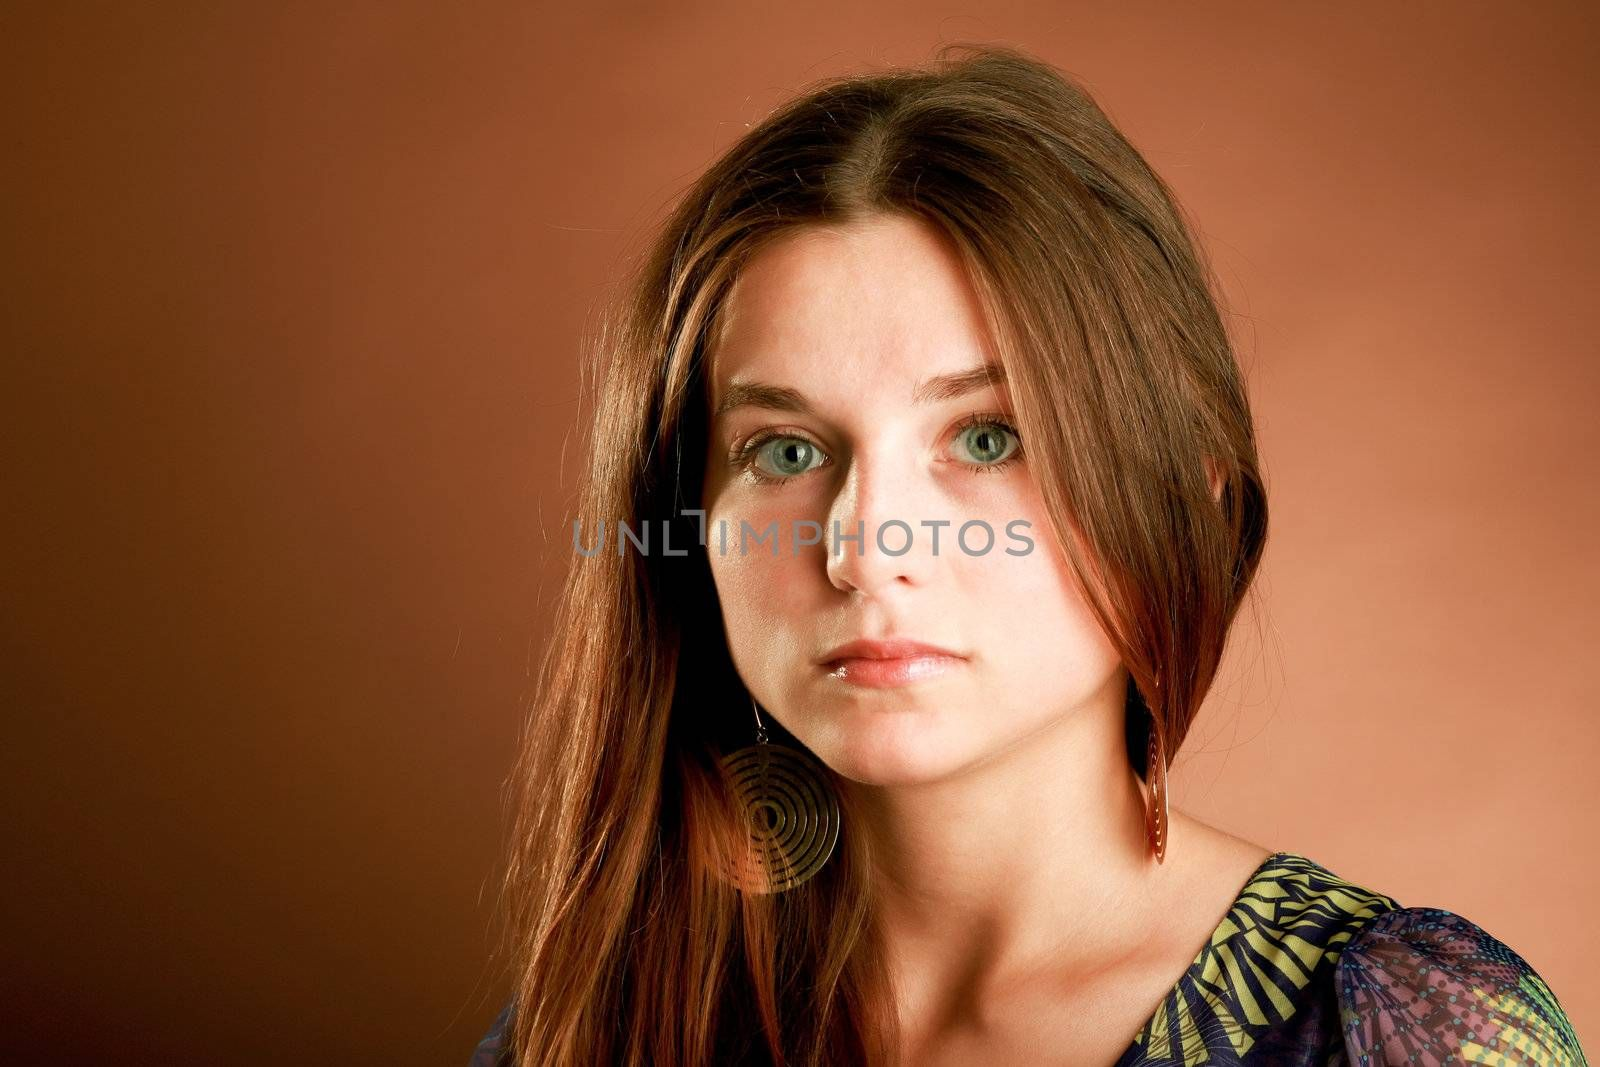 An image of a portrait of a romantic girl